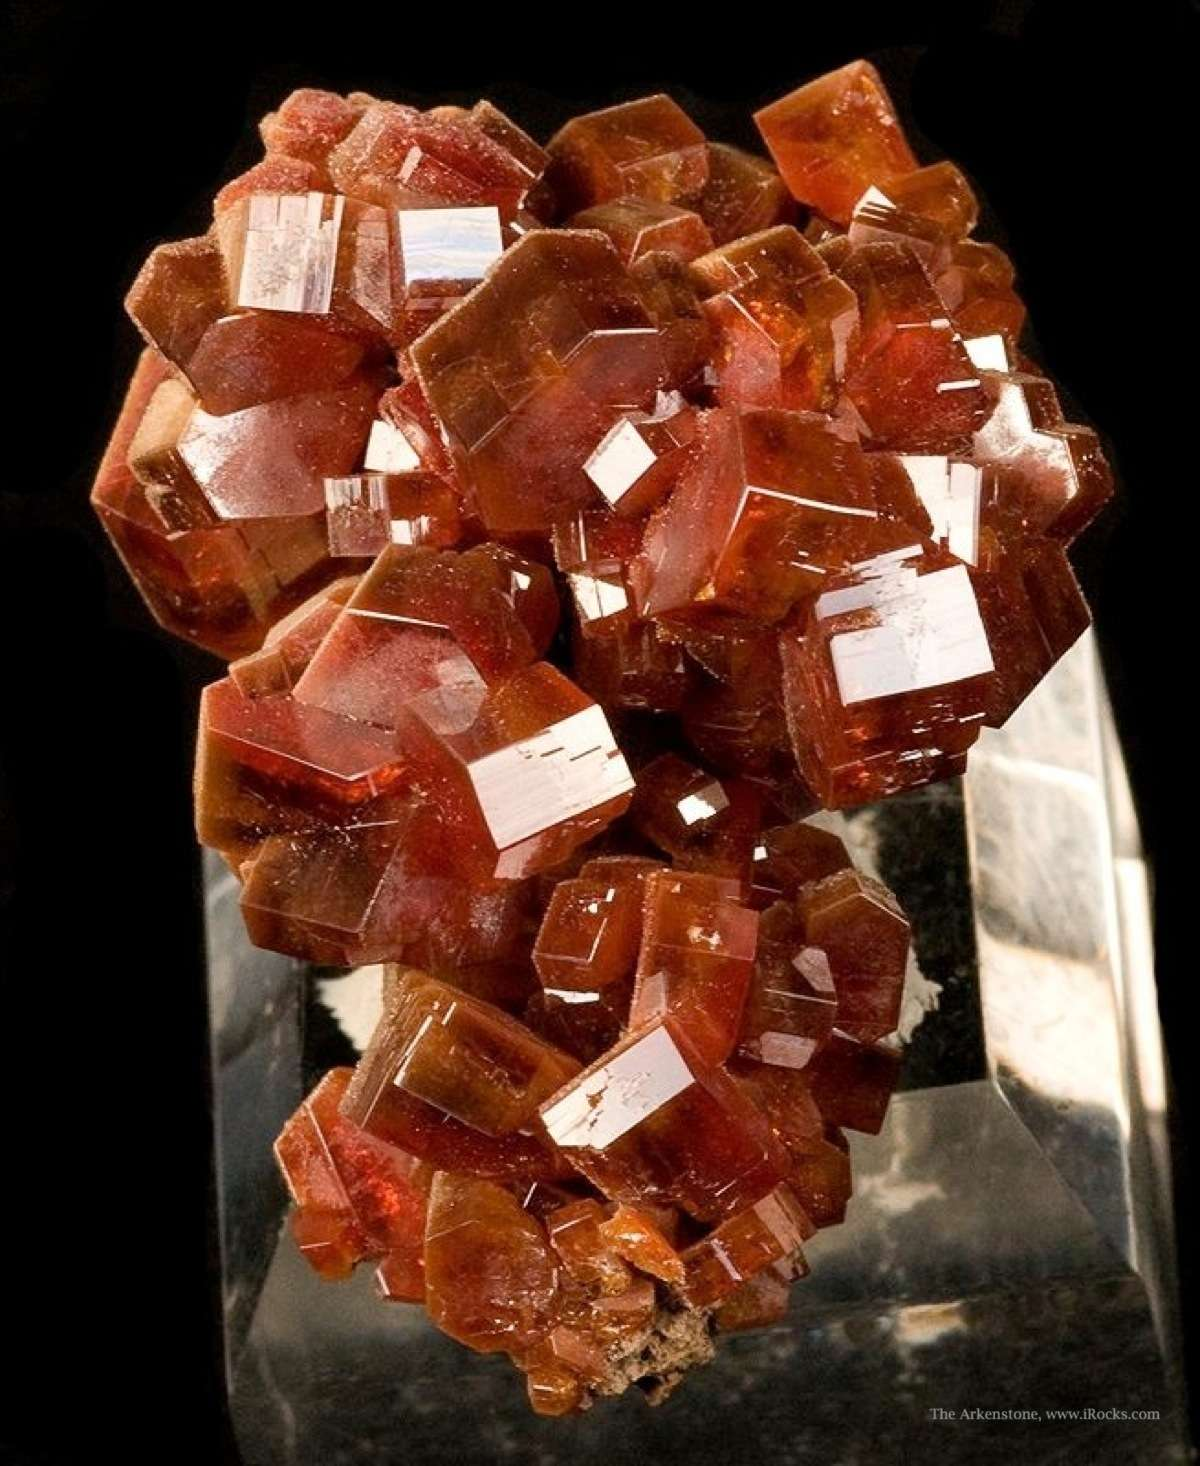 From 2009 noted thick robust crystal sharp aesthetic specimen crystals